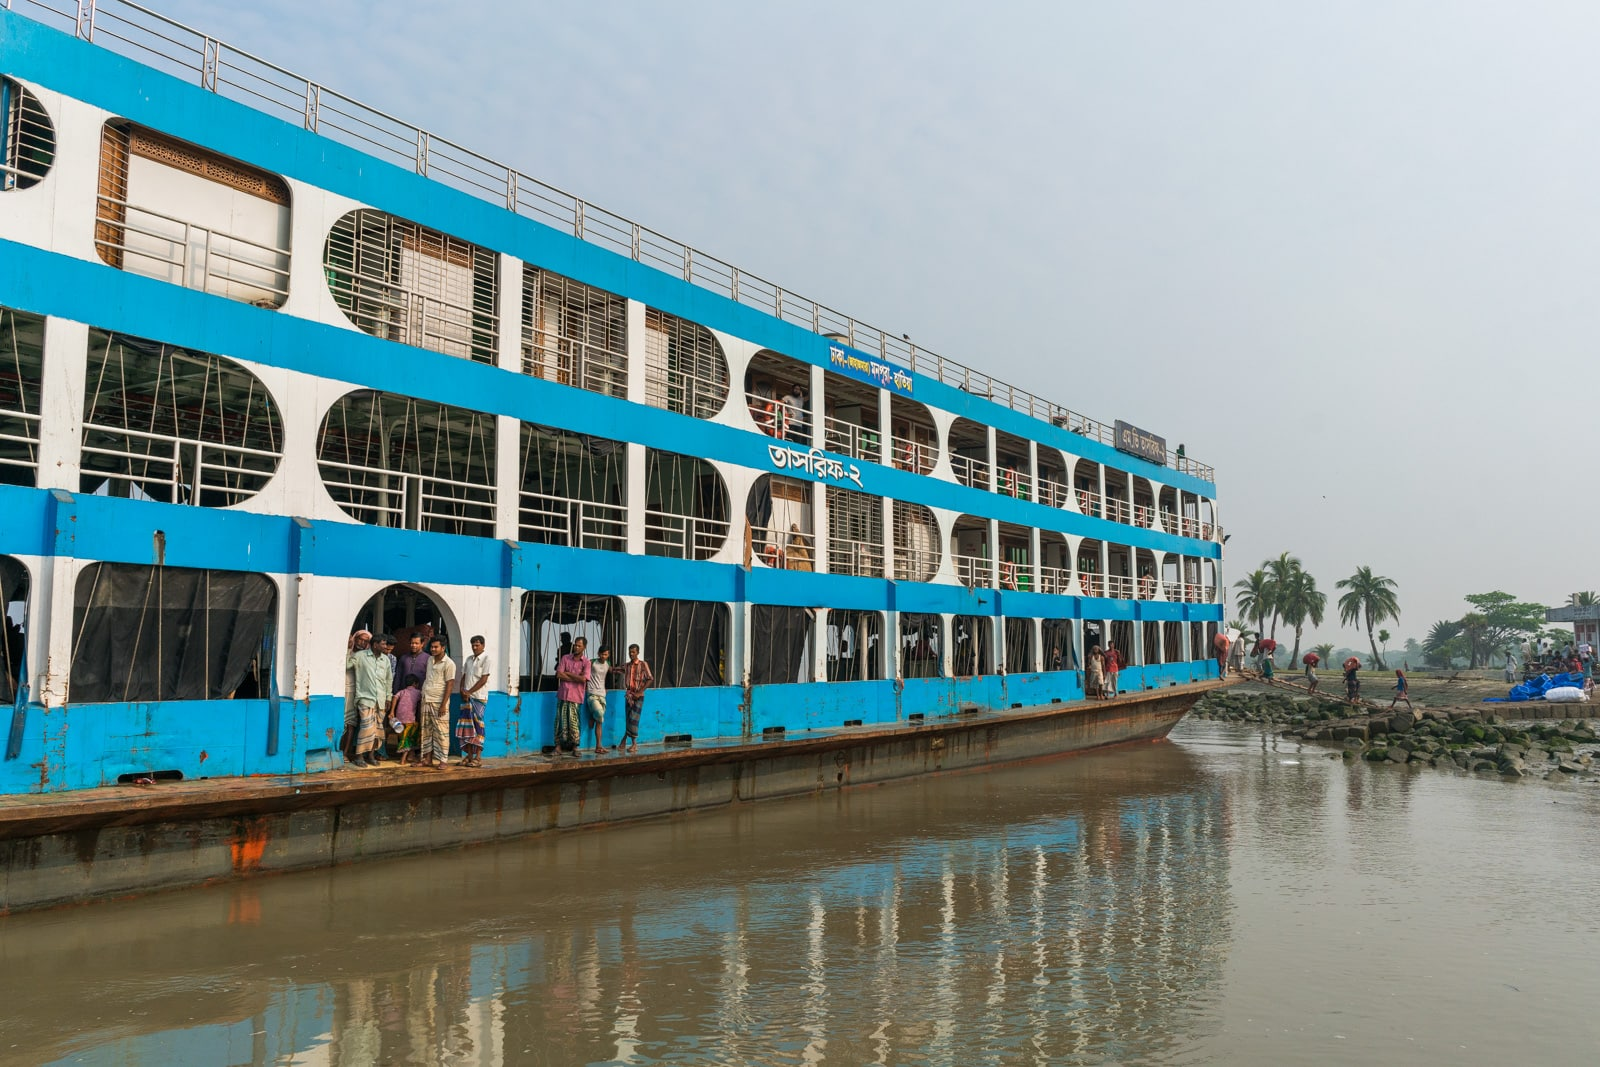 How to reach Nijhum Dwip from Dhaka - Launch boat at Tomoroddi ghat - Lost With Purpose travel blog